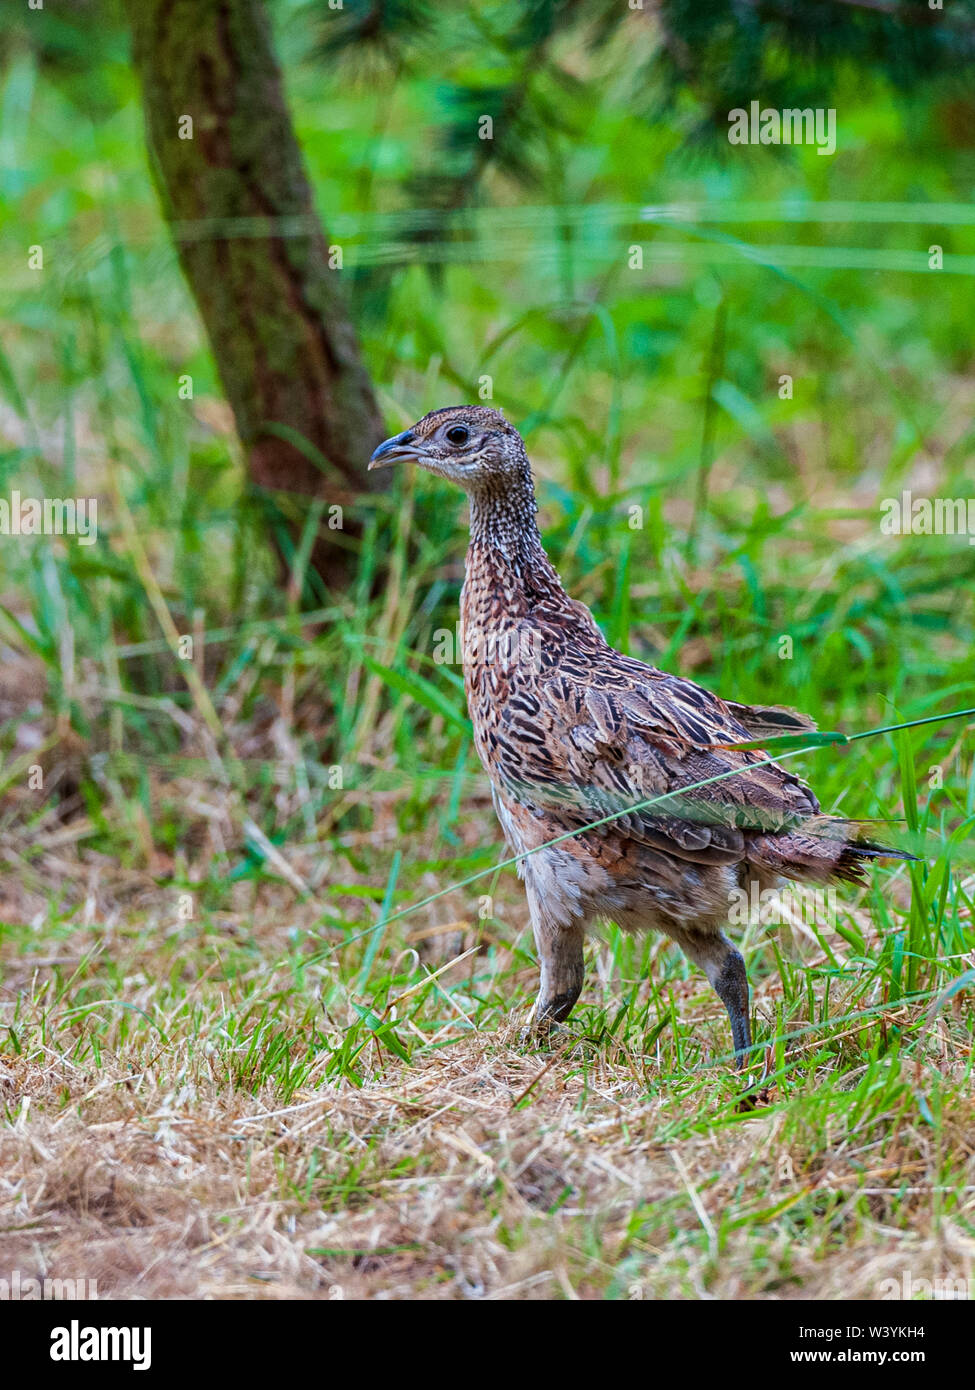 Seven week old young pheasants, often called poults, which have just been released into a gamekeeper's release pen on a shooting estate - Stock Image